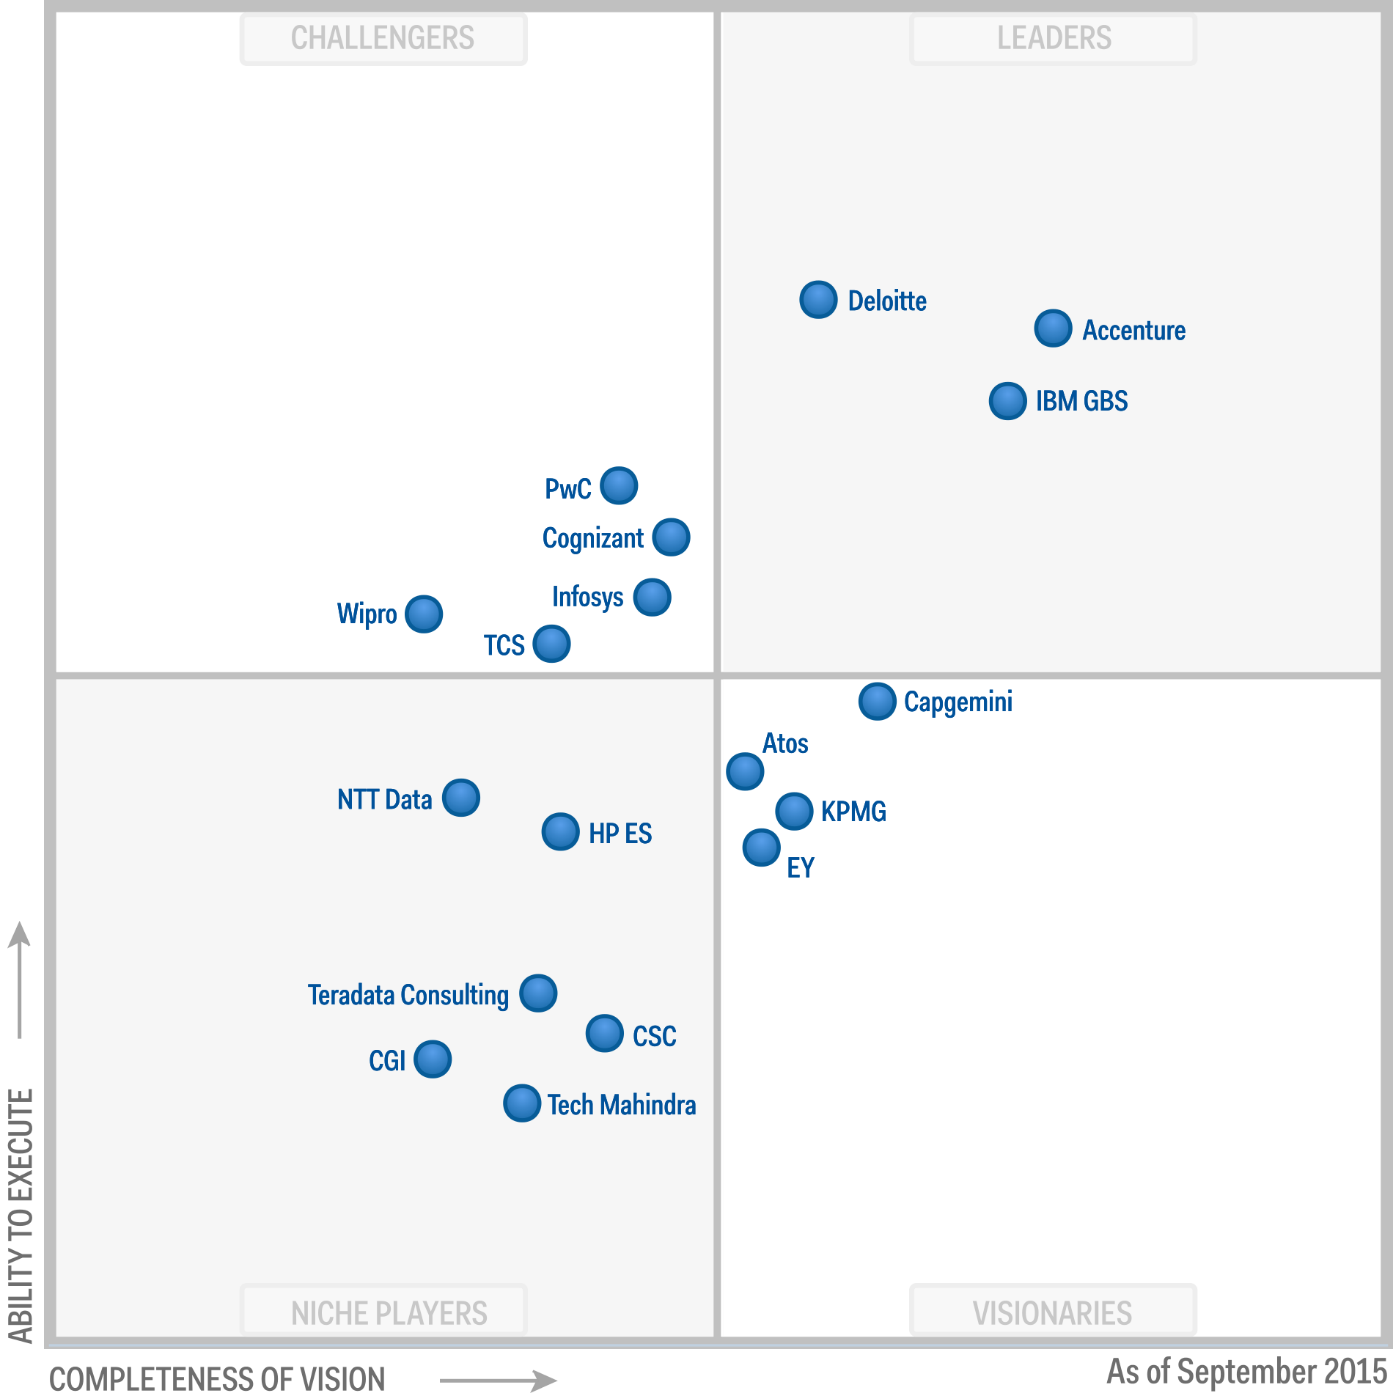 Gartner Magic Quadrant For Business Analytics Services Worldwide Consulting And System Integration Companies Are Ntt Data Data Visualization Research Images